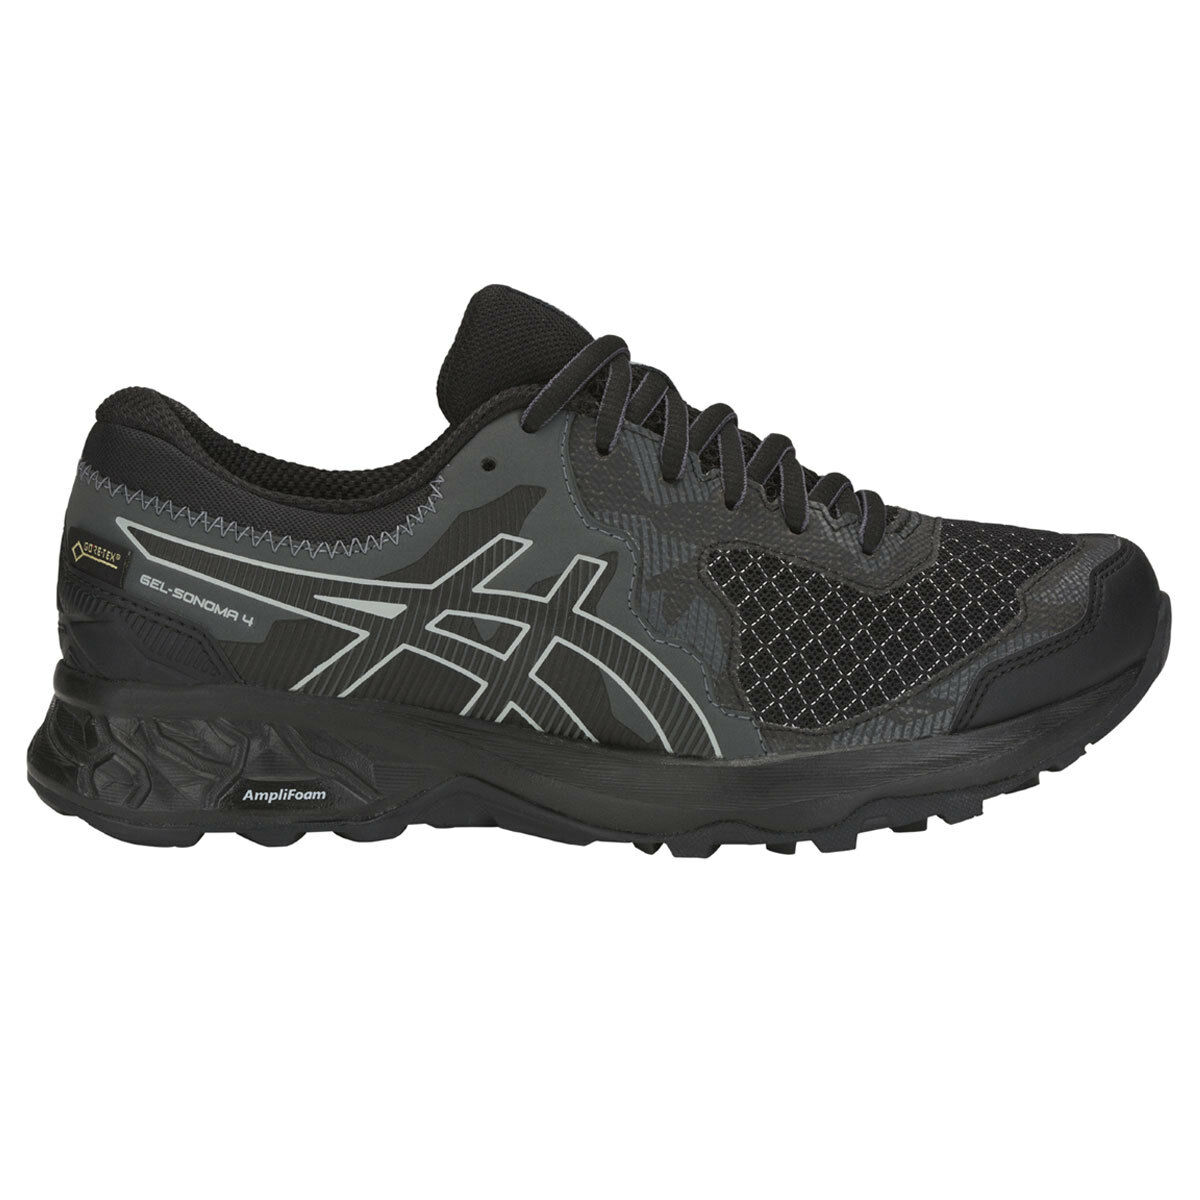 Asics gel-Sonoma 4 G-TX mujer   1012a191-001   impermeable y resistente a la intemperie